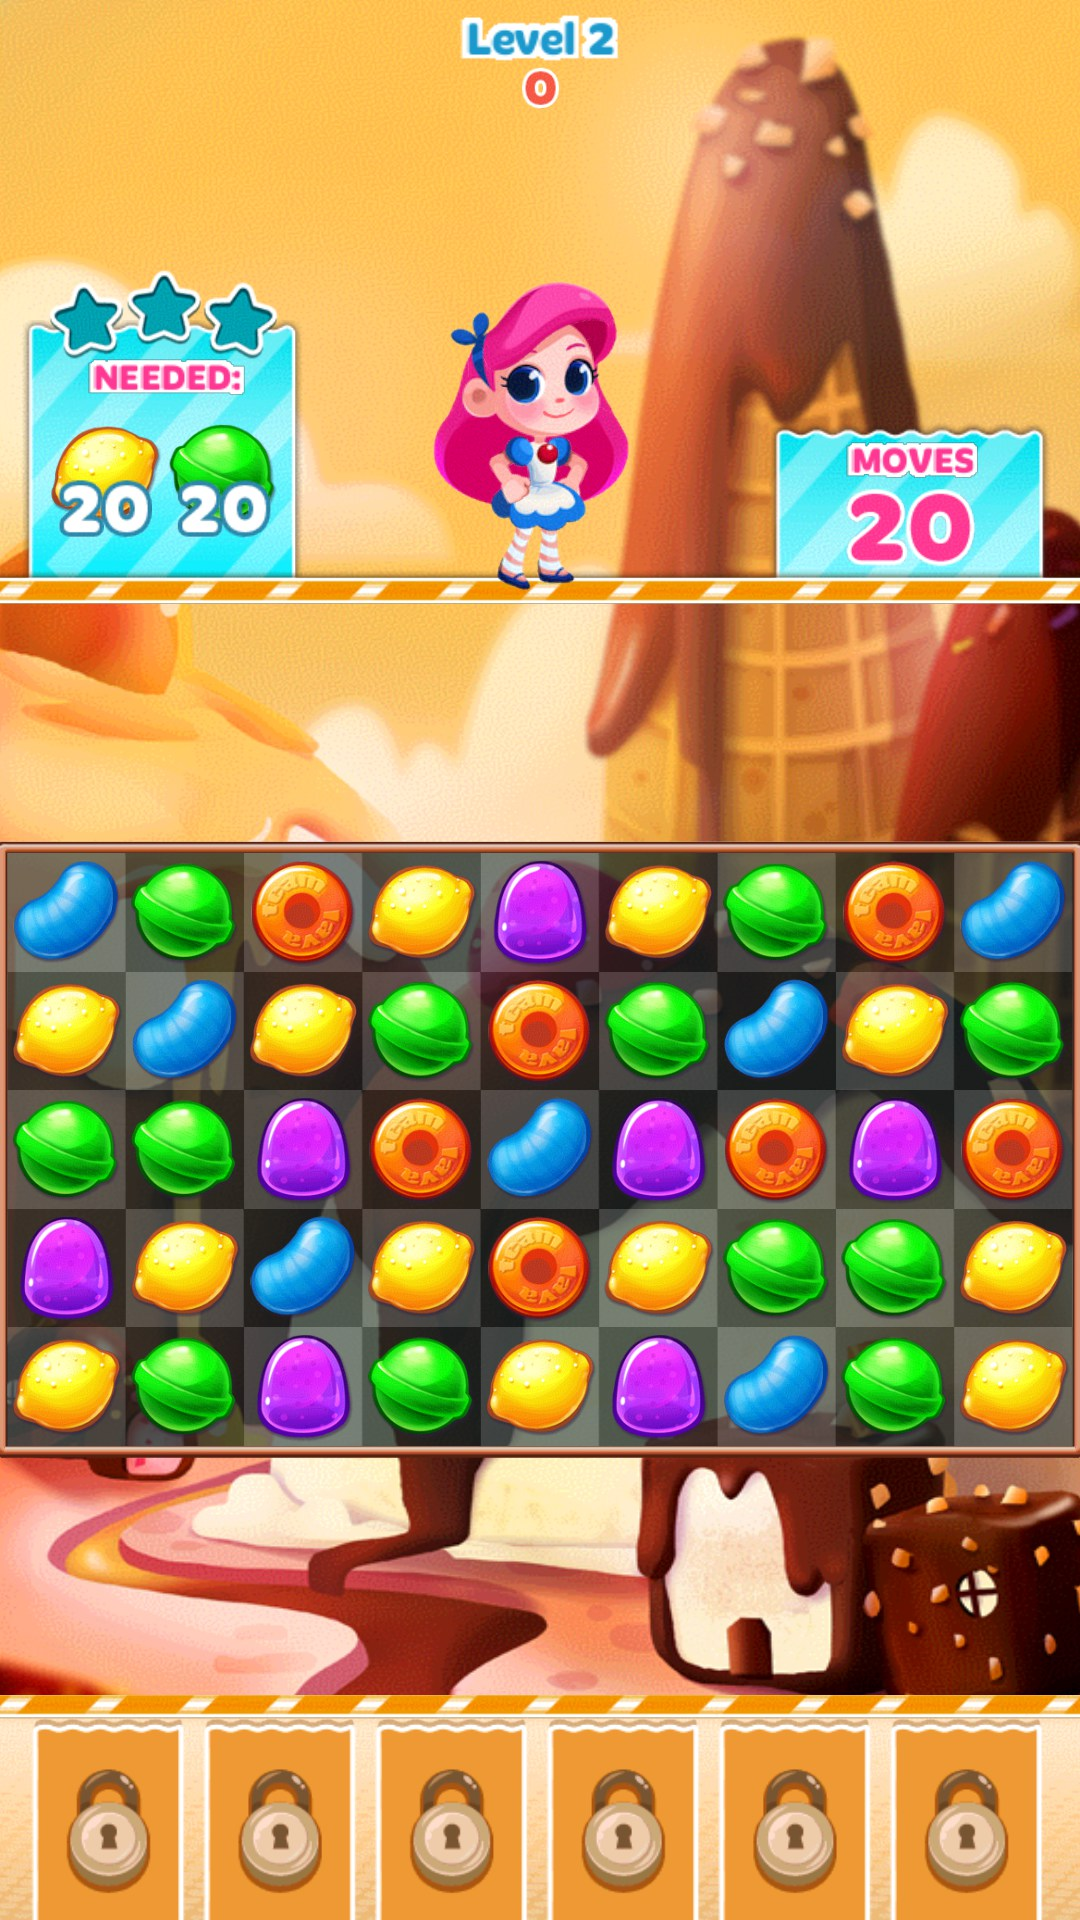 Candy Blast Mania for China Ampe A10 Quad Core (Sanei N10) - Free download games for Android tablets